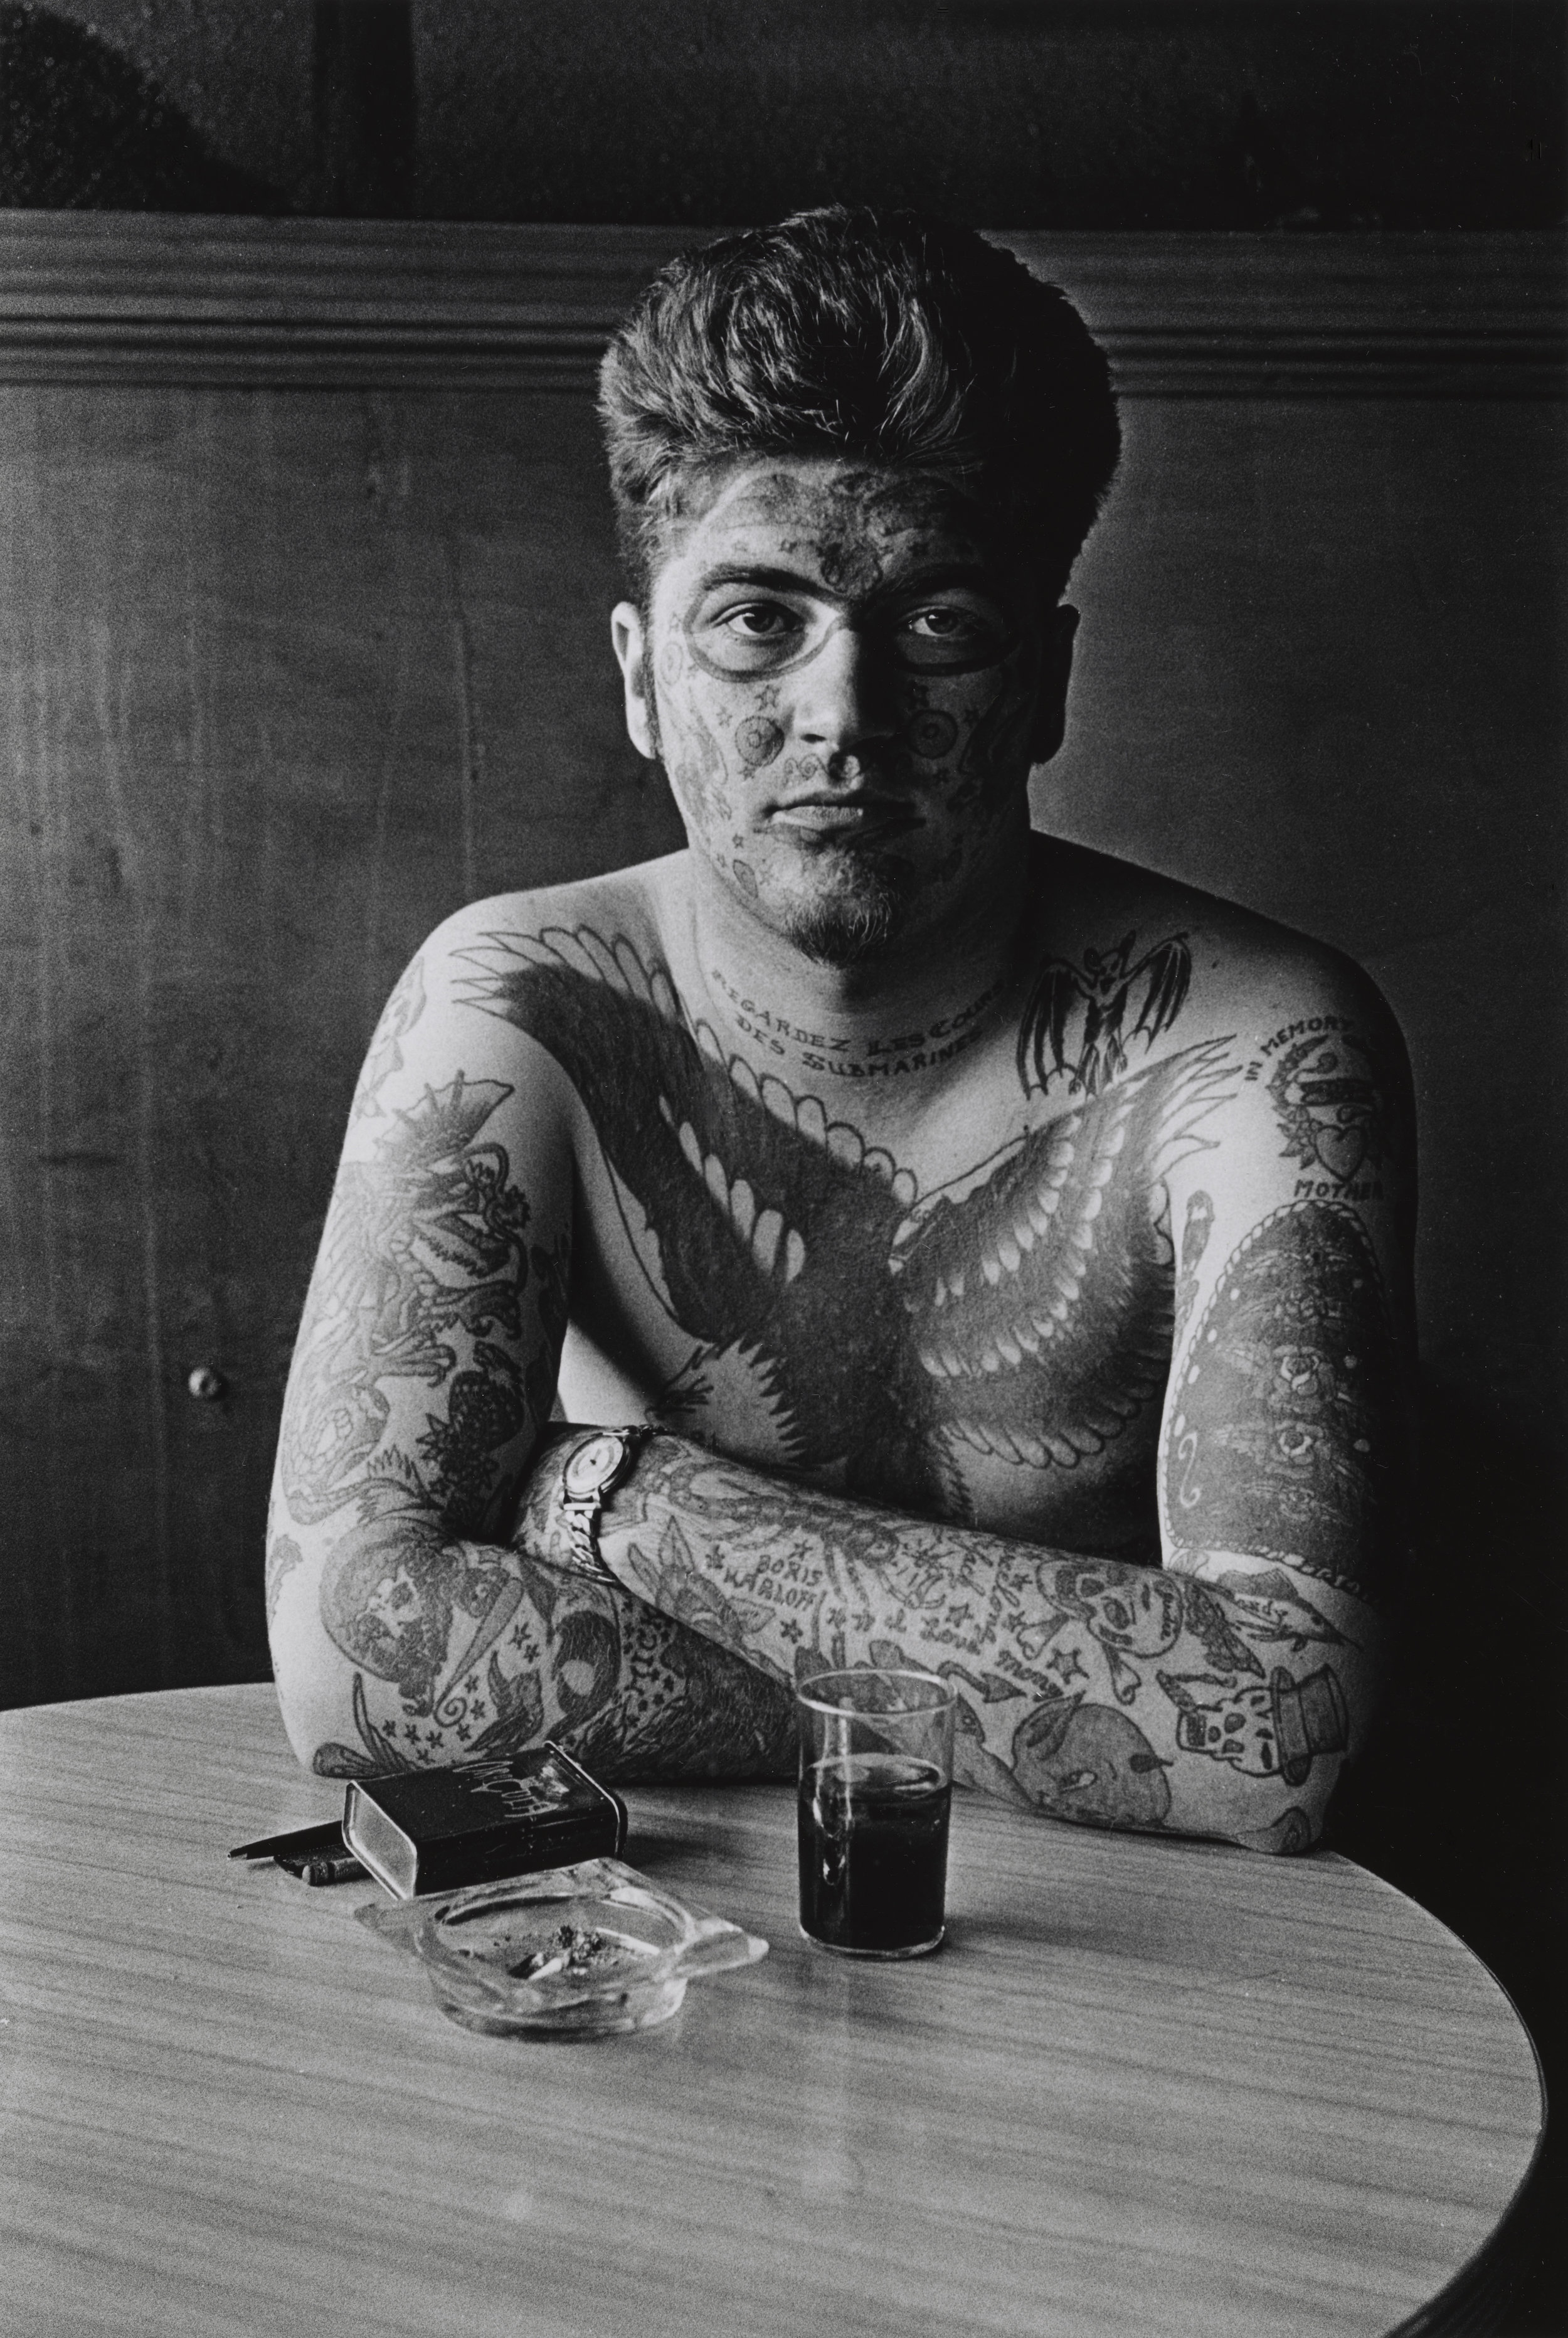 Jack Dracula at a bar, New London, 1961 -  Copyright © The Estate of Diane Arbus, LLC. All Rights Reserved.